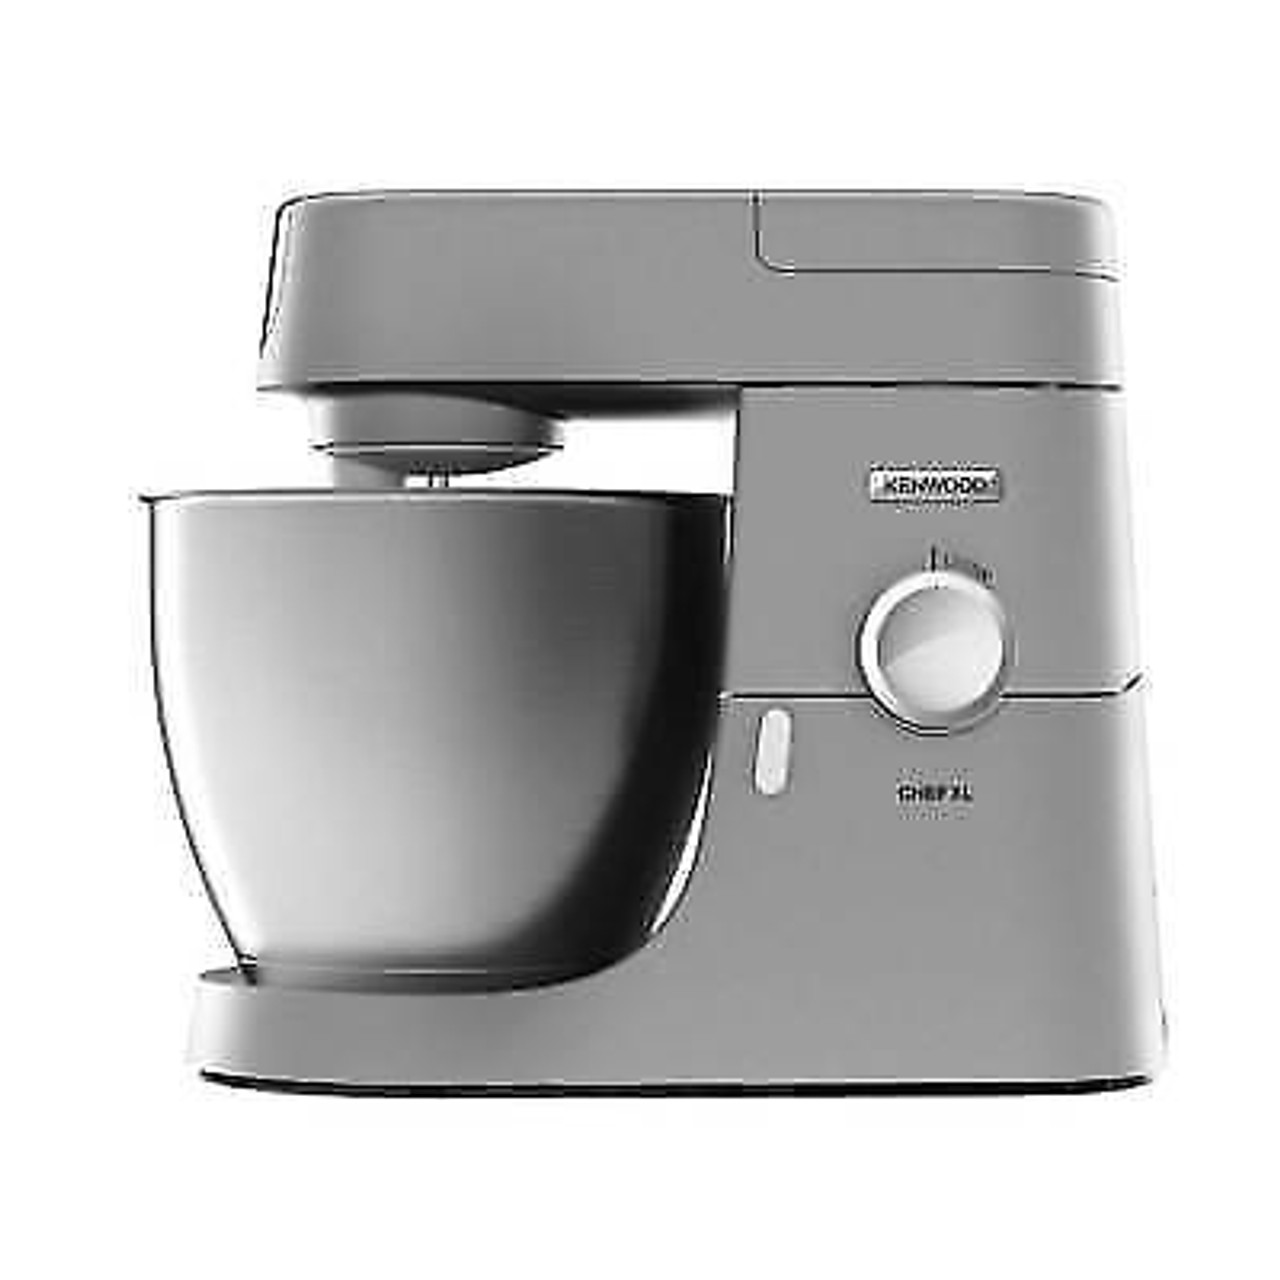 Kenwood KVL4100S Chef XL 1200W Mixer with 6.7L Bowl - Silver - RRP $699.00